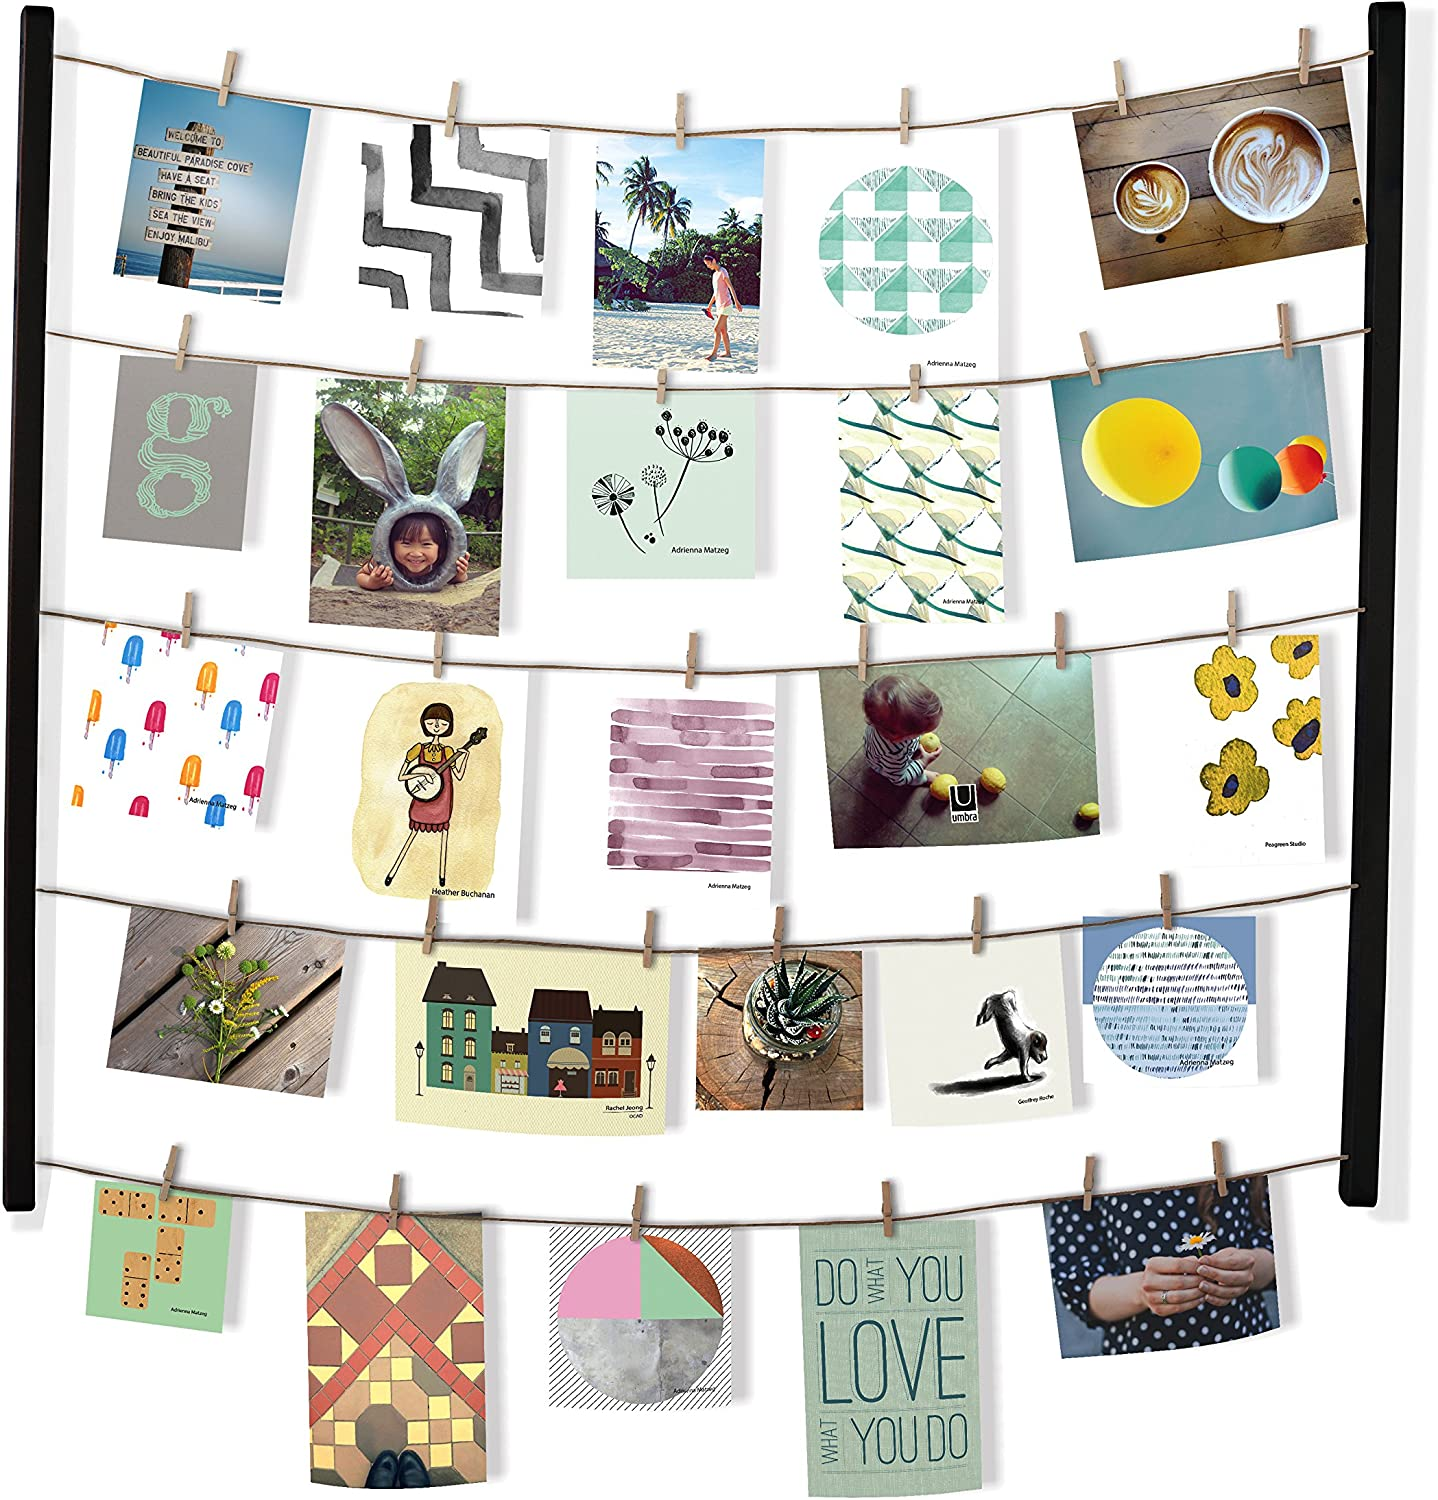 Umbra Hangit Display-DIY Frames Collage Set Includes Picture Wire Twine Cords, Wall Mounts and Clothespin Clips for Hanging Photos, Prints and Artwork, 26 x 30, Black